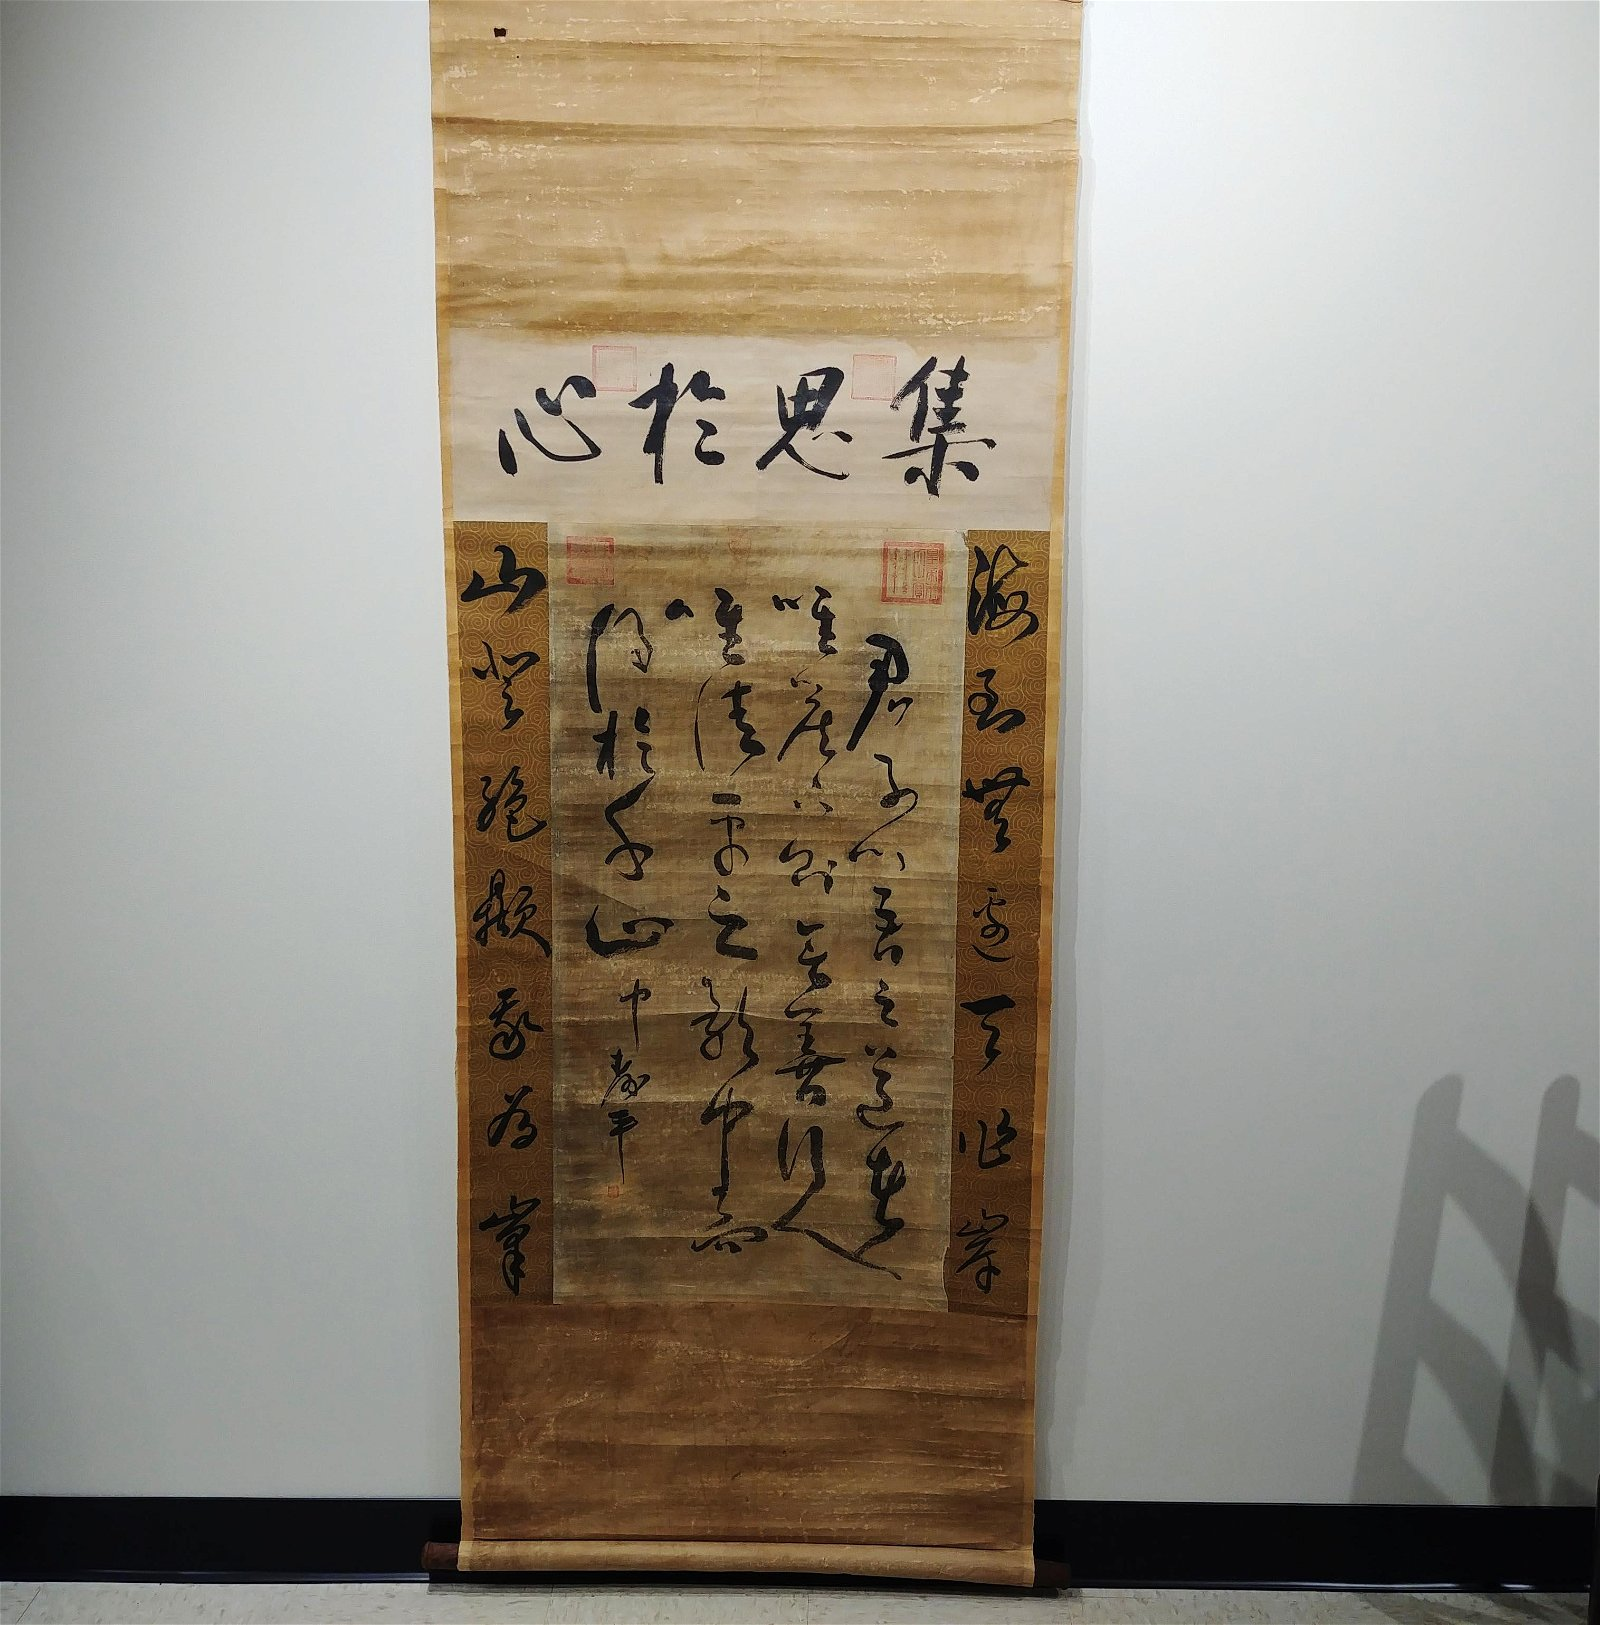 Chinese Hanging Scroll with Calligraphy, 19th century